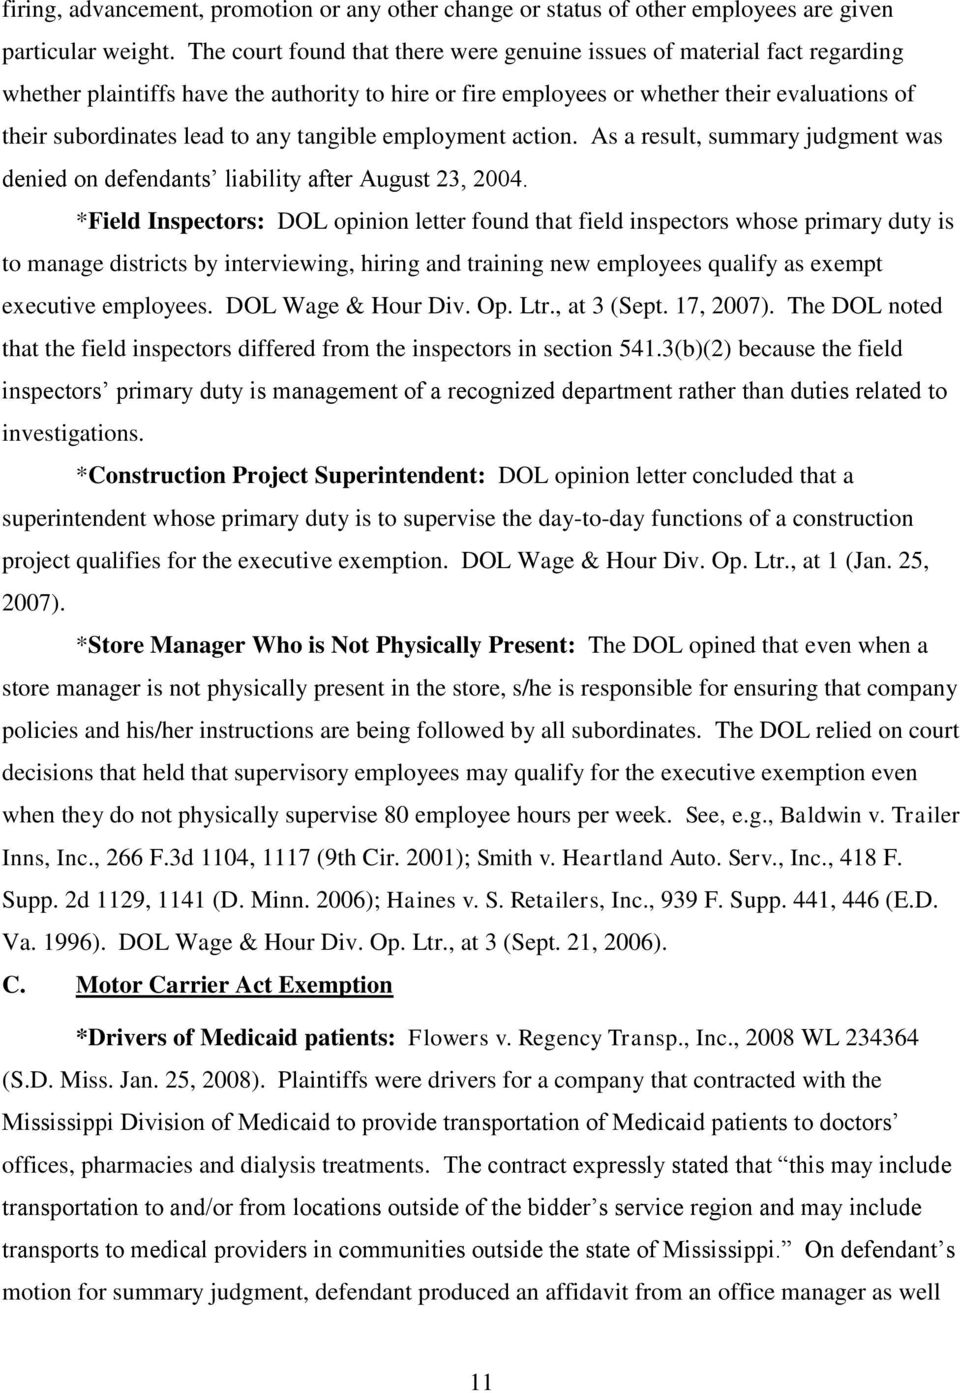 any tangible employment action. As a result, summary judgment was denied on defendants liability after August 23, 2004.